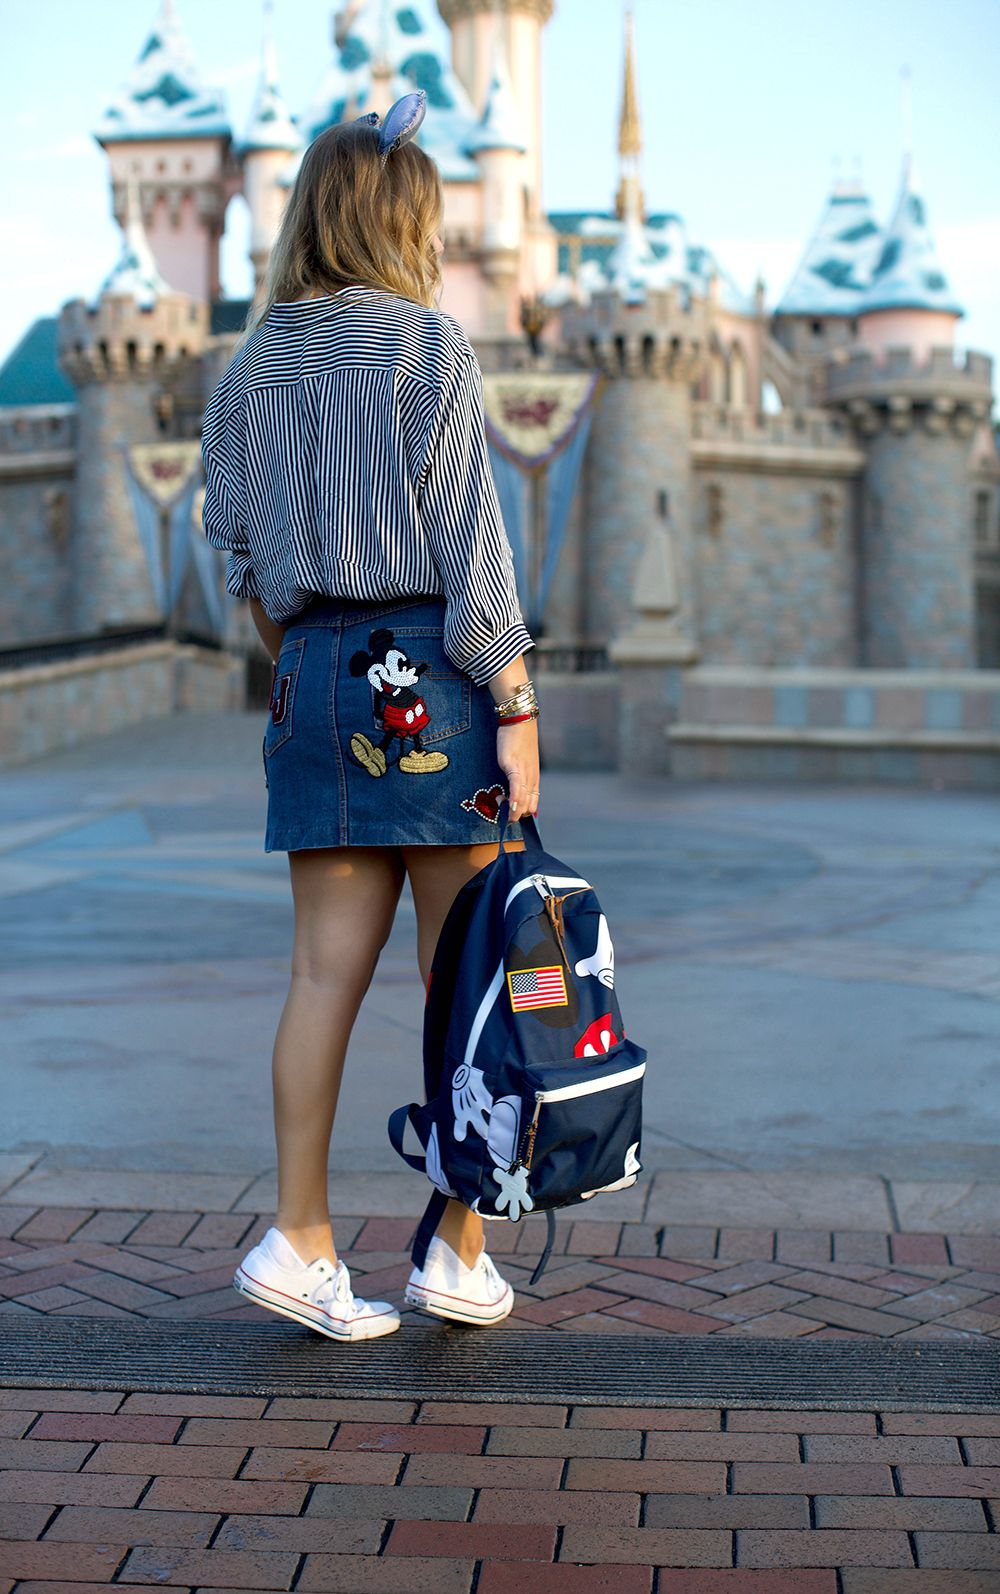 Cute Summer Outfits For Vacation: How This Fashion Blogger And Disney Fan Girl Elevates Her